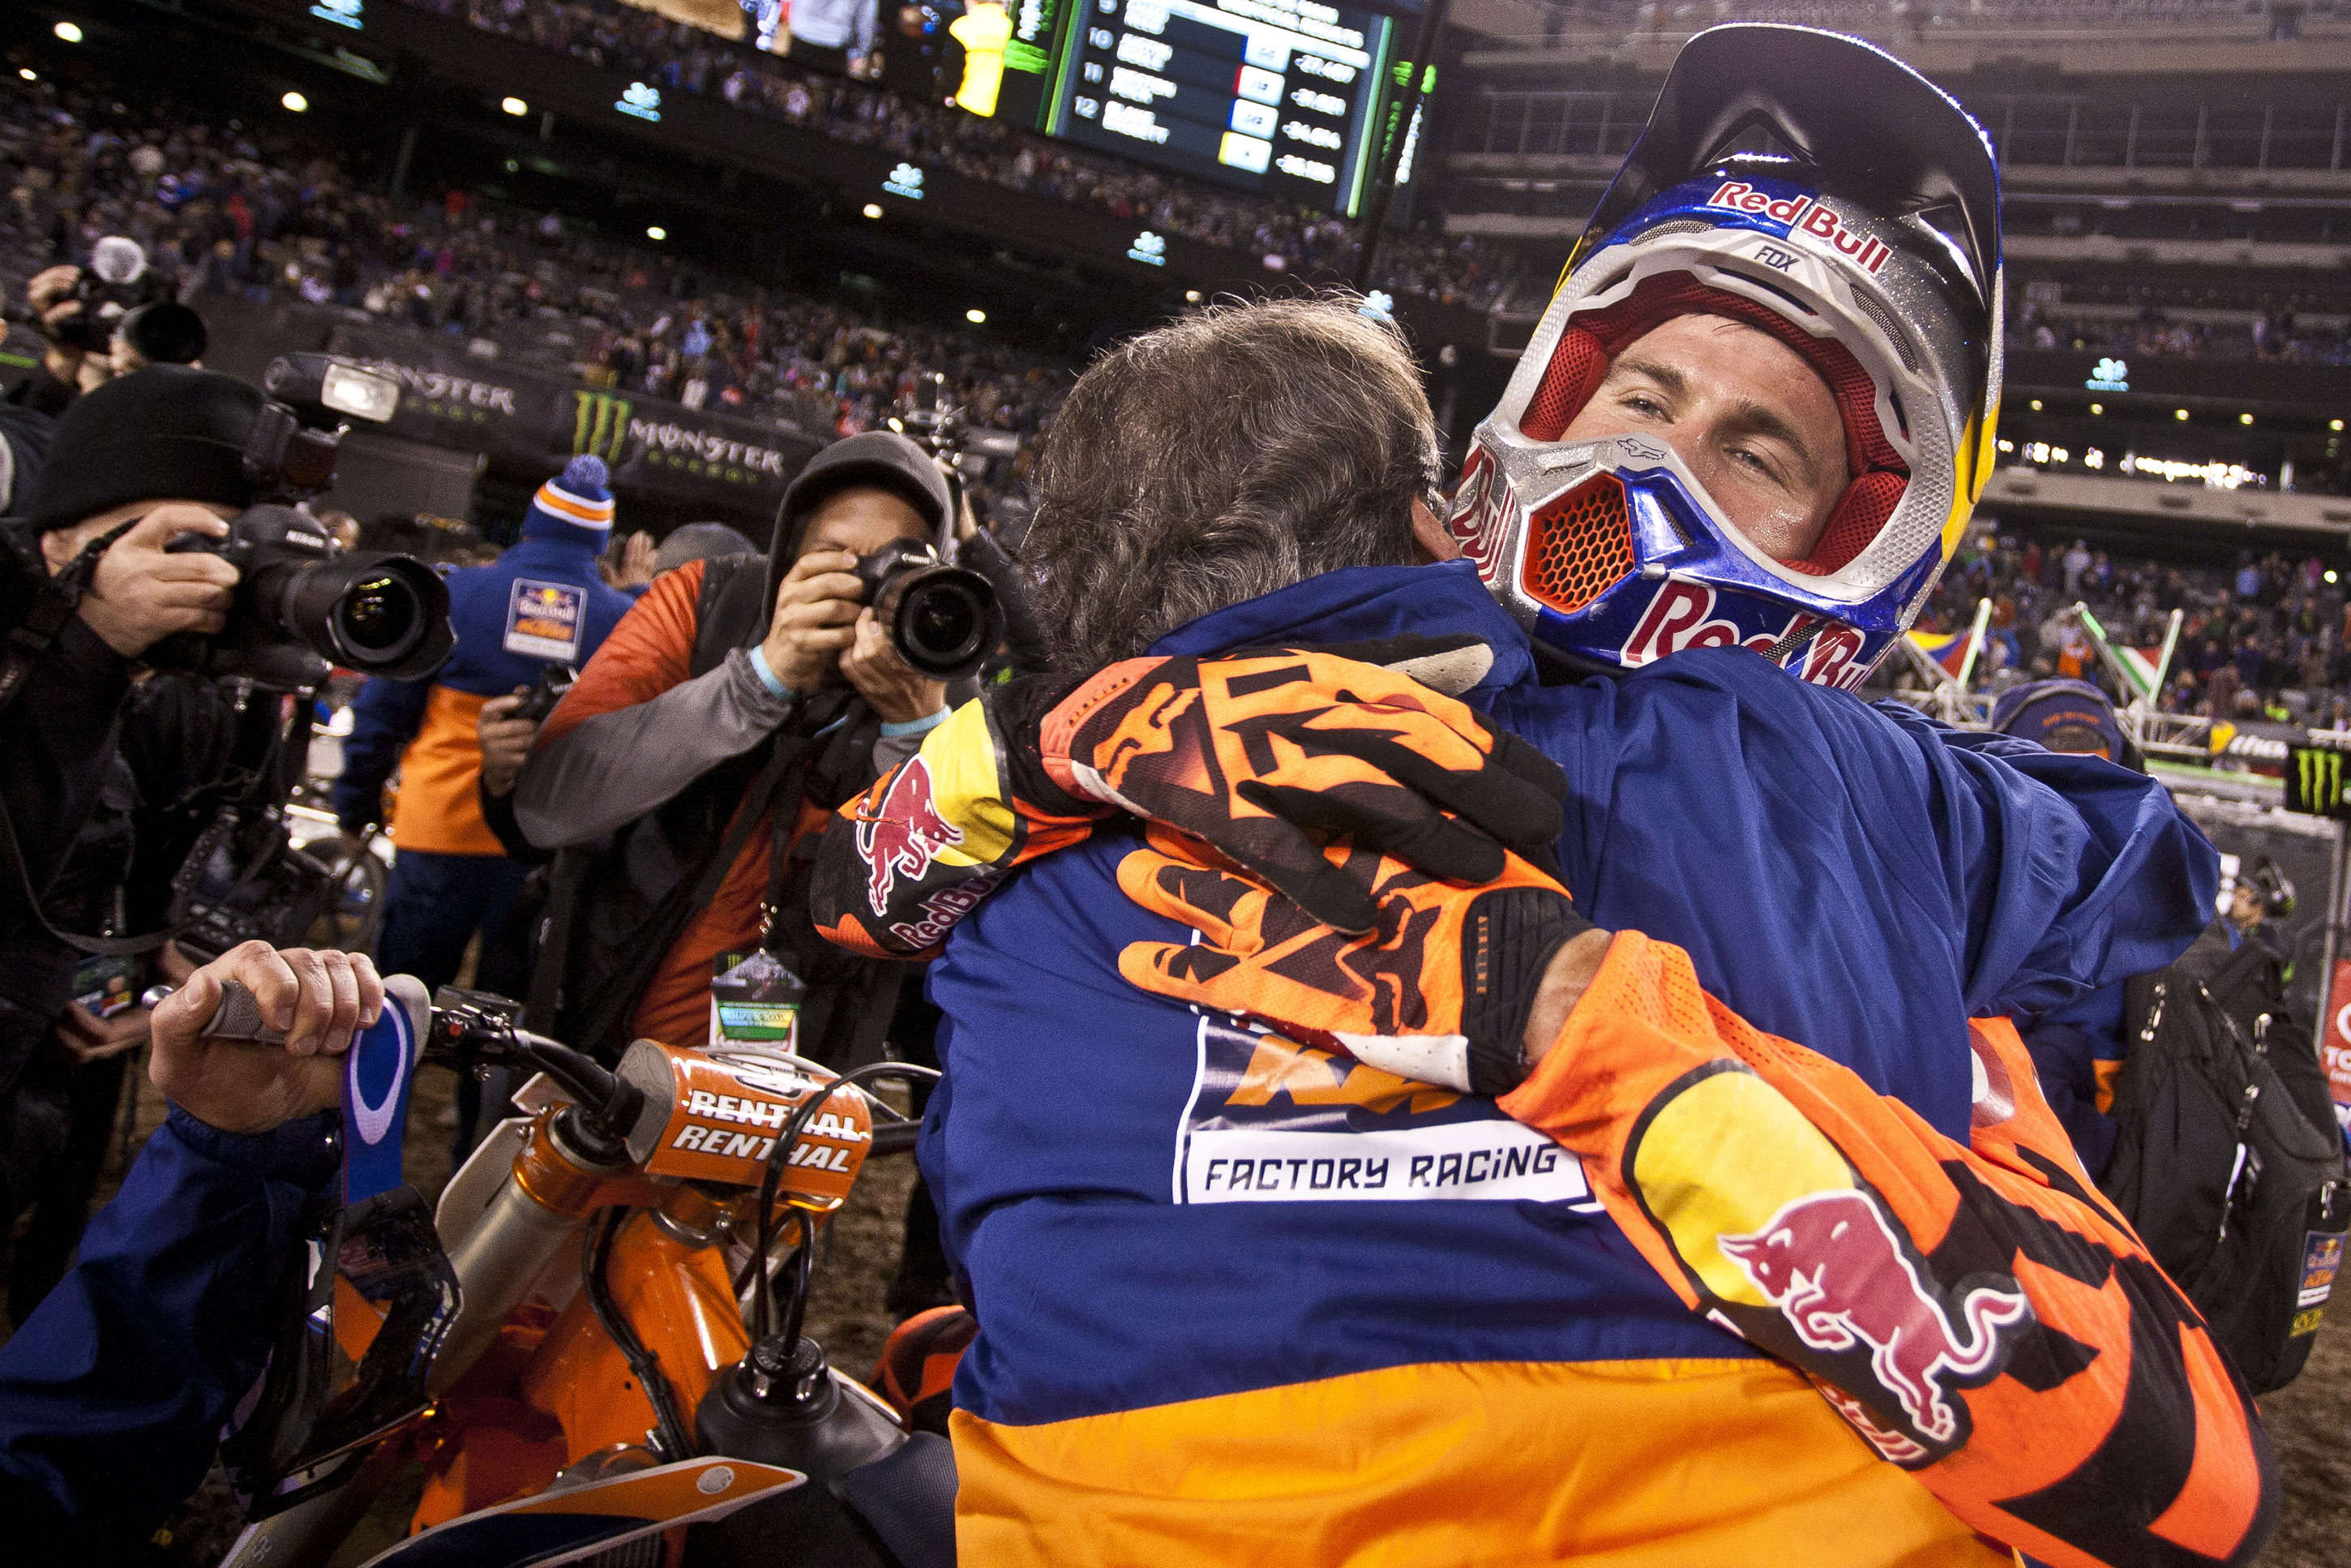 Ryan Dungey celebrates after winning the AMA Supercross Series Championship at Met Life Stadium in East Rutherford, New Jersey, USA on April 30, 2016. // Garth Milan/Red Bull Content Pool // P-20160502-03280 // Usage for editorial use only // Please go to www.redbullcontentpool.com for further information. //